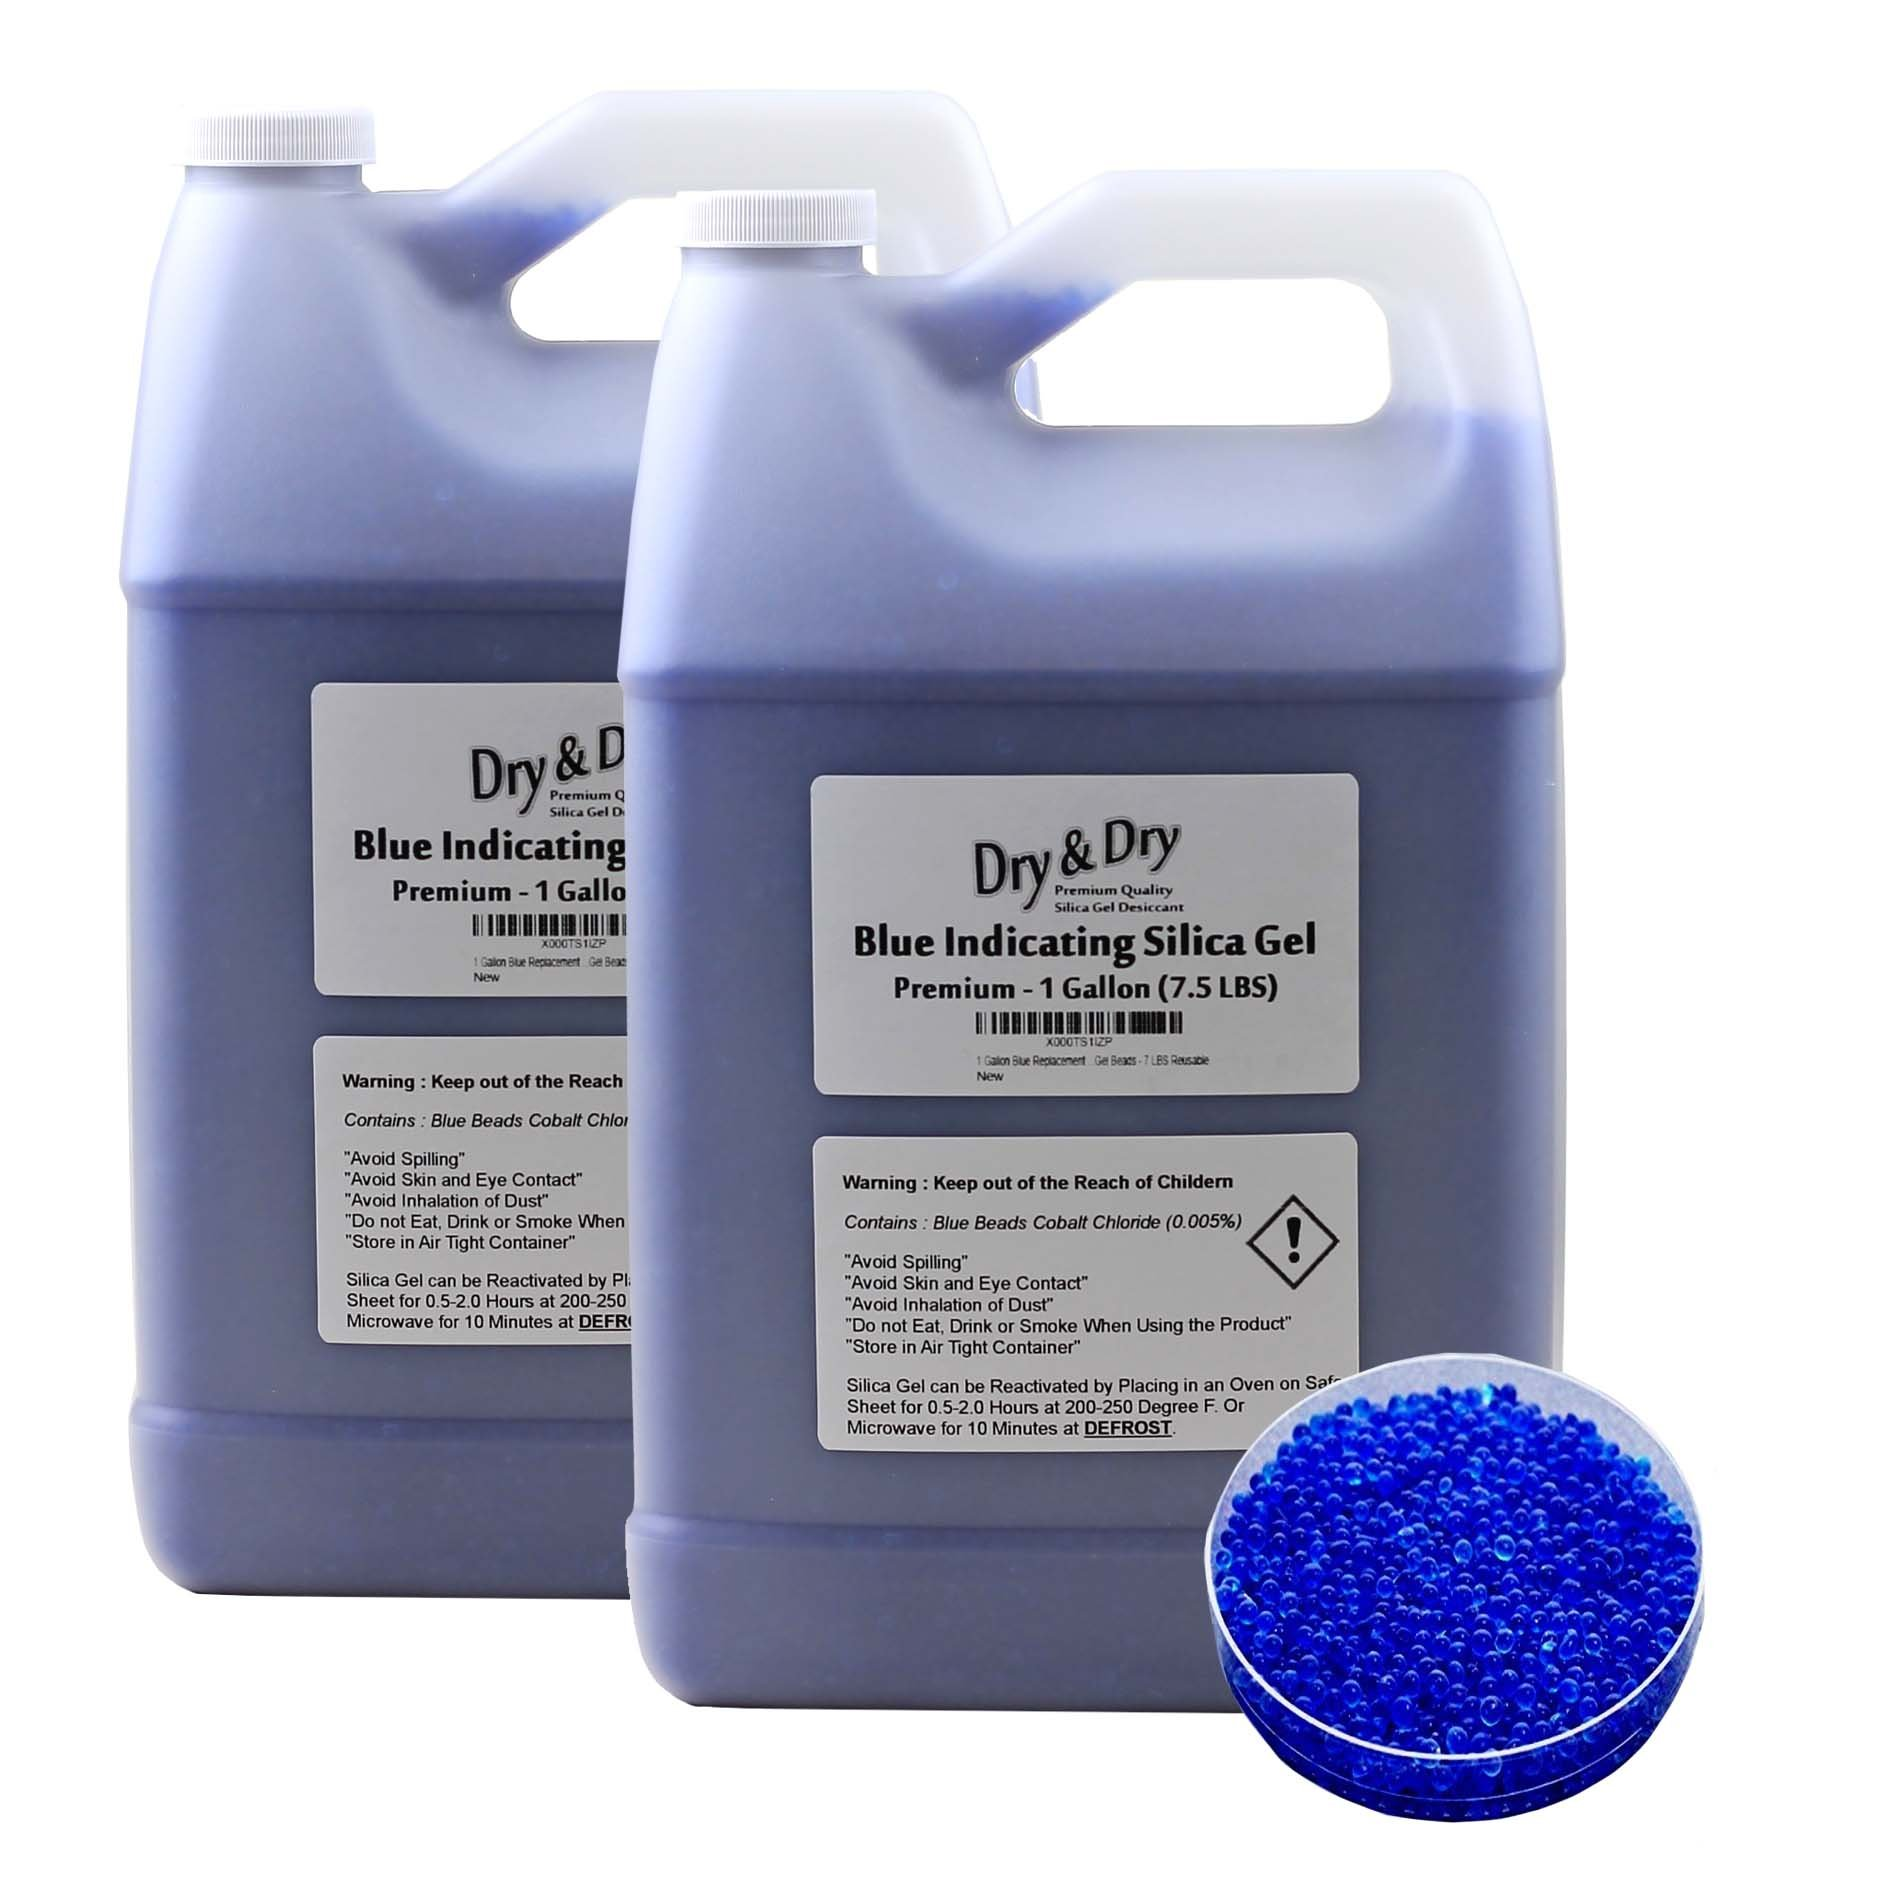 ''Dry & Dry'' (2 Gallon) Premium Blue Indicating(Blue to Pink) Silica Gel Desiccant Beads(Industry Standard 2-4 mm) - Rechargeable(15 LBS) by Dry & Dry